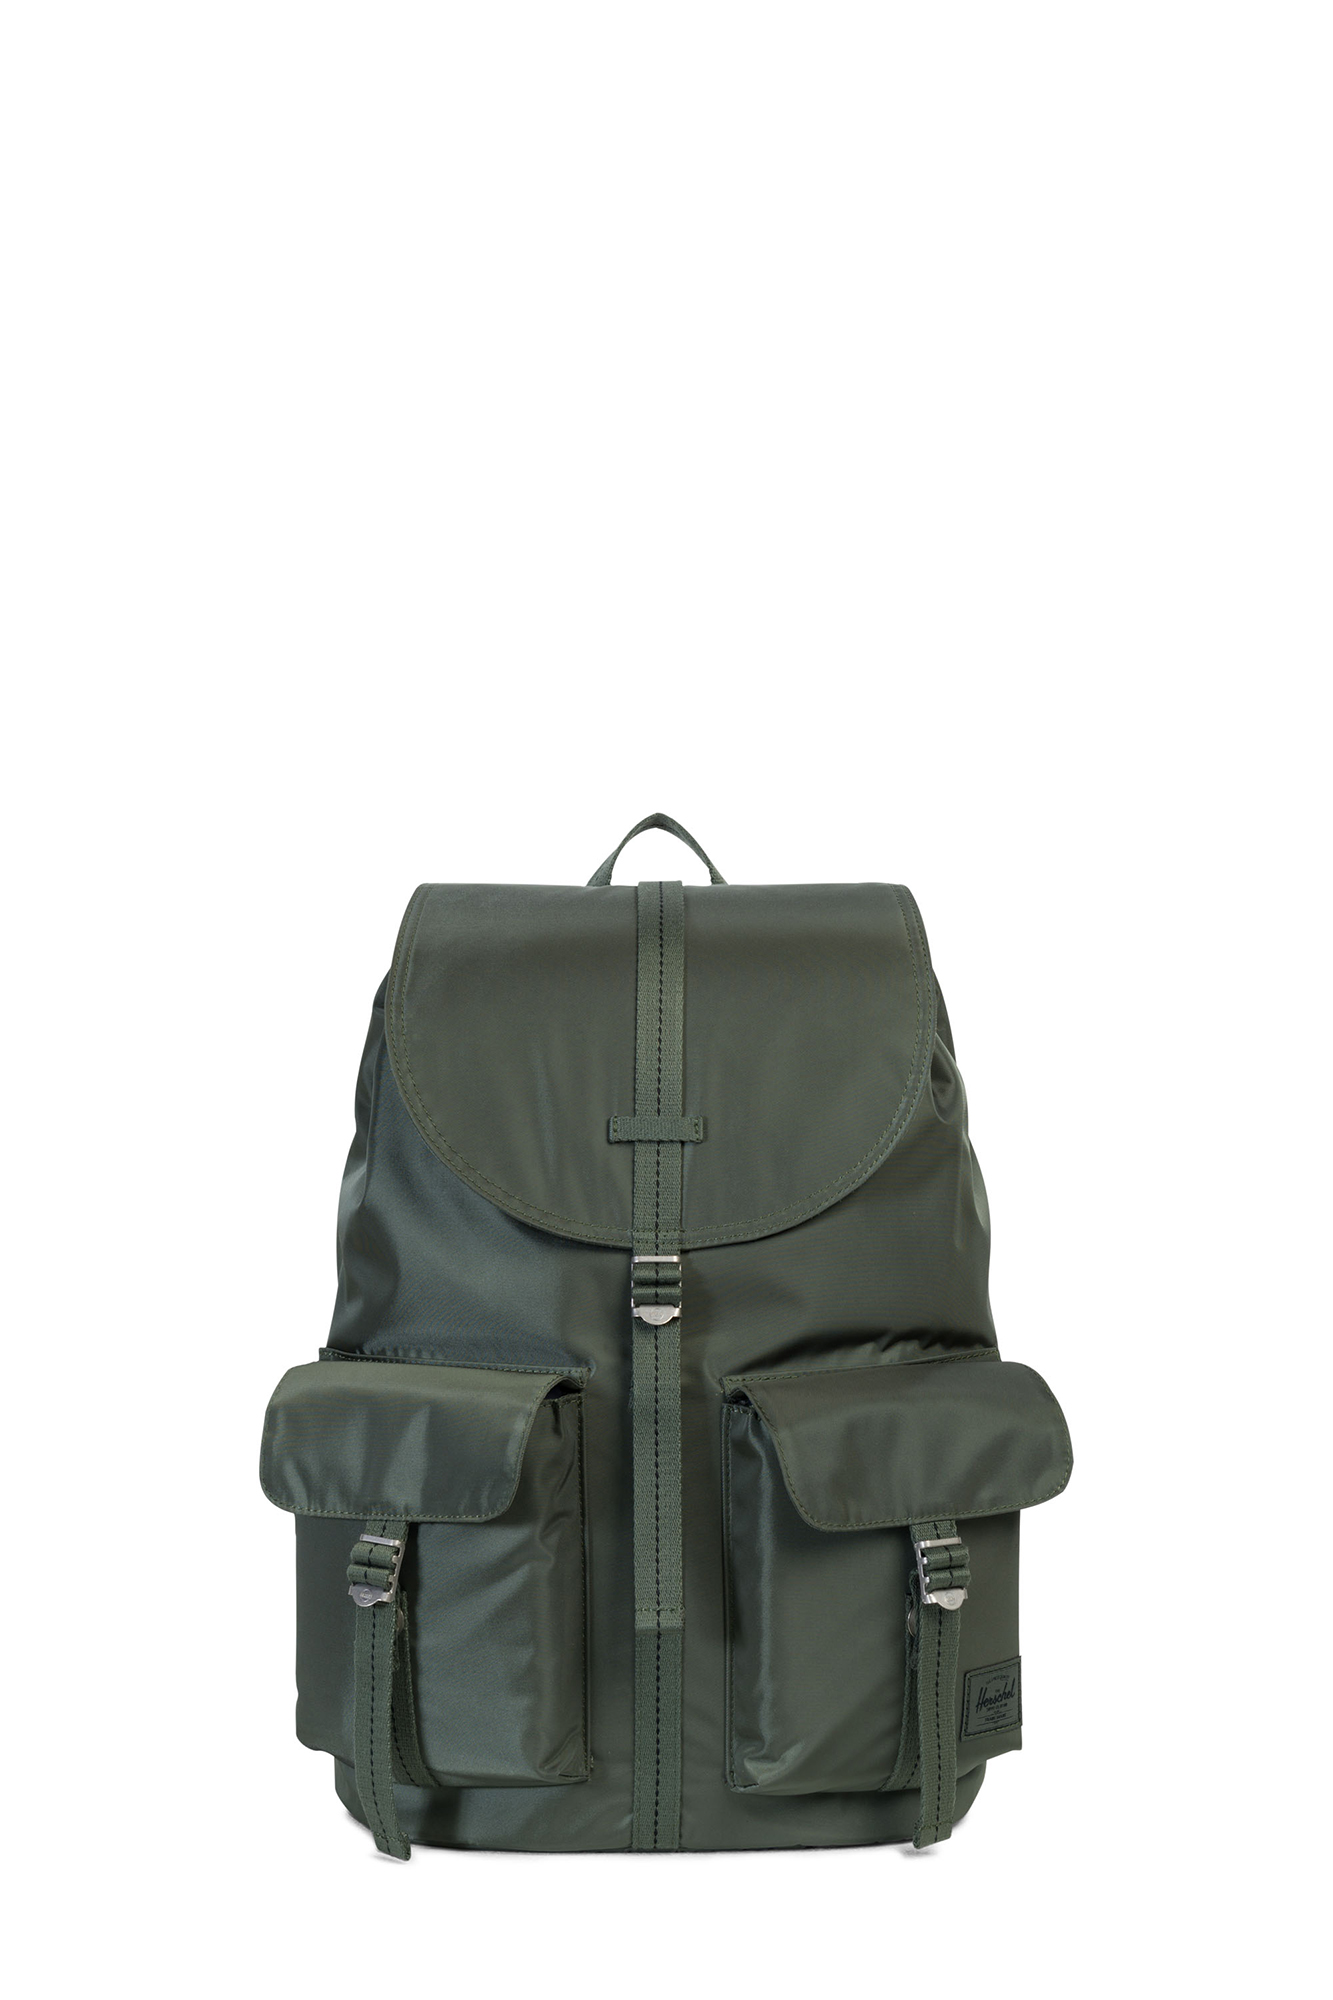 Herschel - Dawson Surplus Beetle backpack